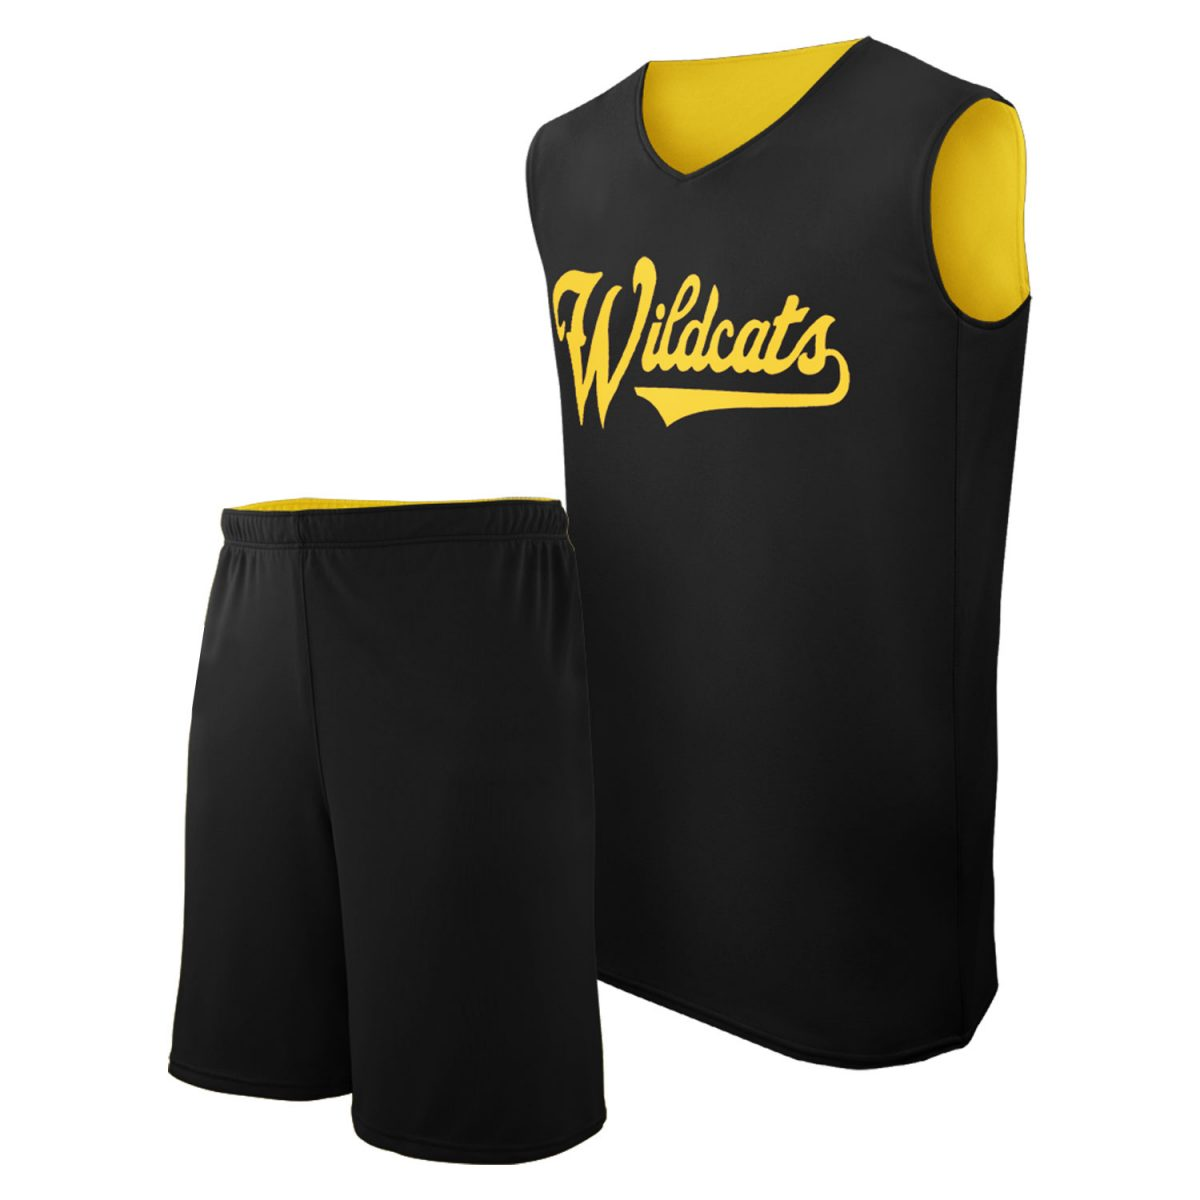 Boys Basketball Uniforms Manufacturers in Spain